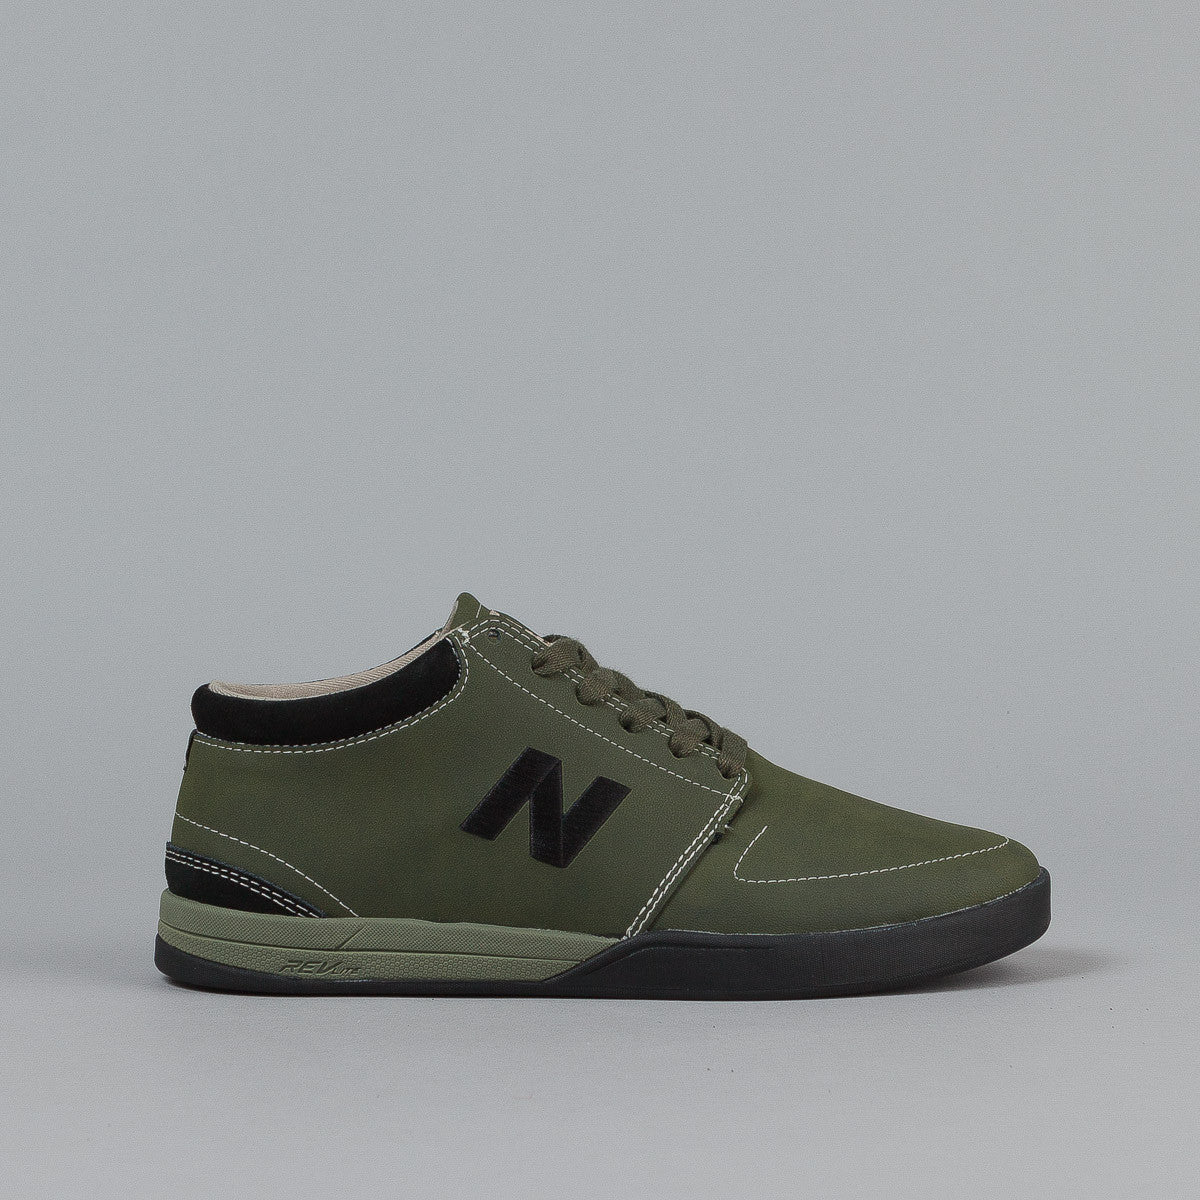 New Balance Numeric Brighton Hi 347 Shoes